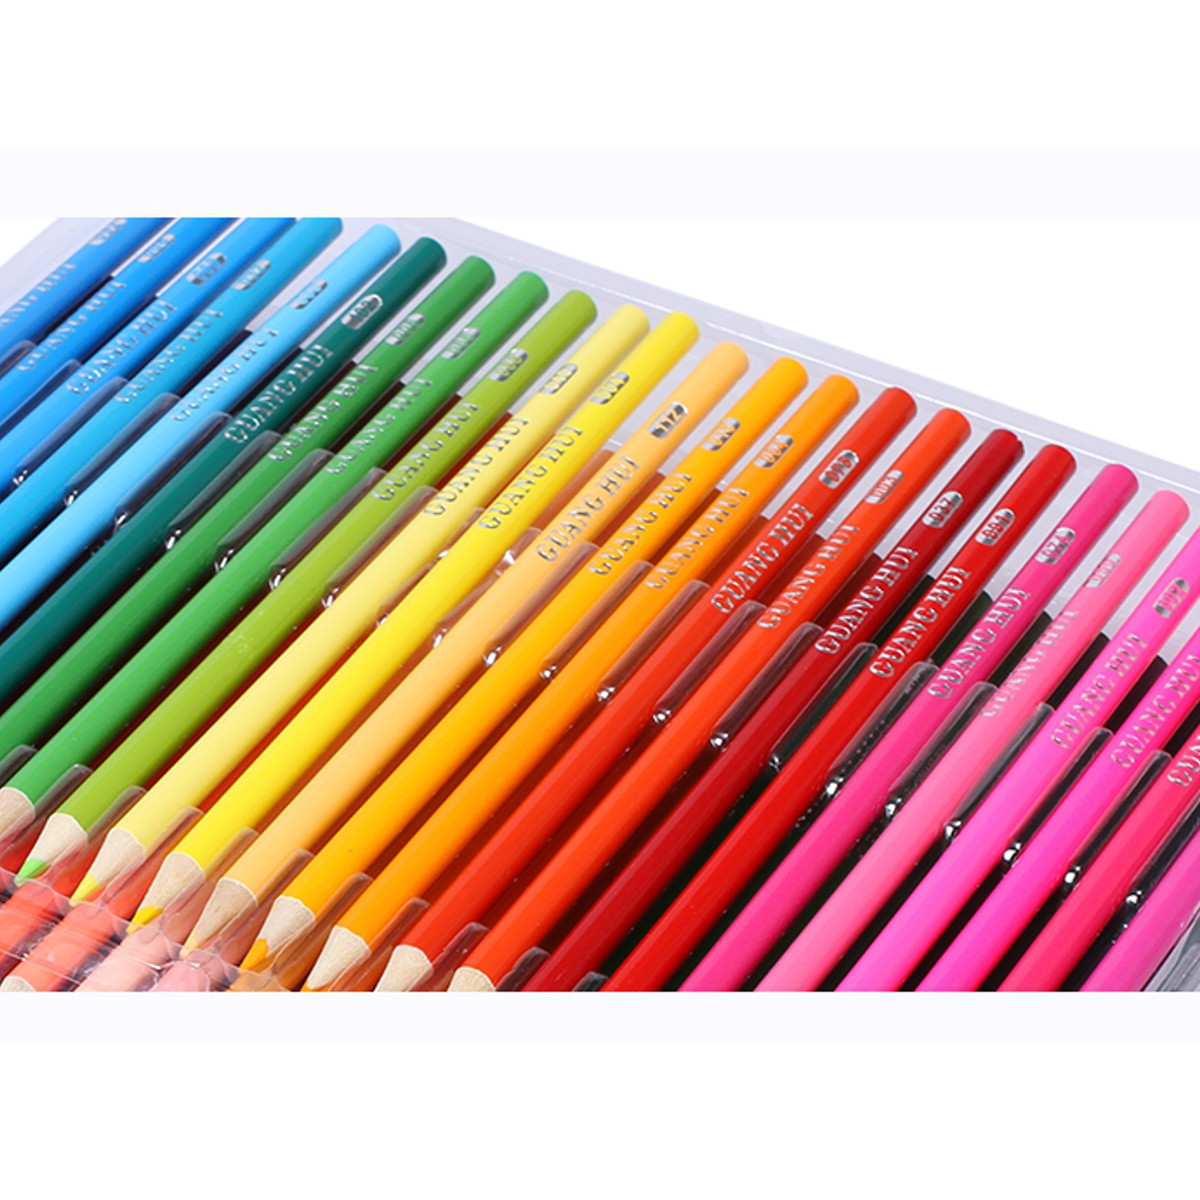 120 Colored Wood Pencils Artist Painting Oil Art Drawing Pen Sketching Set Non-toxic